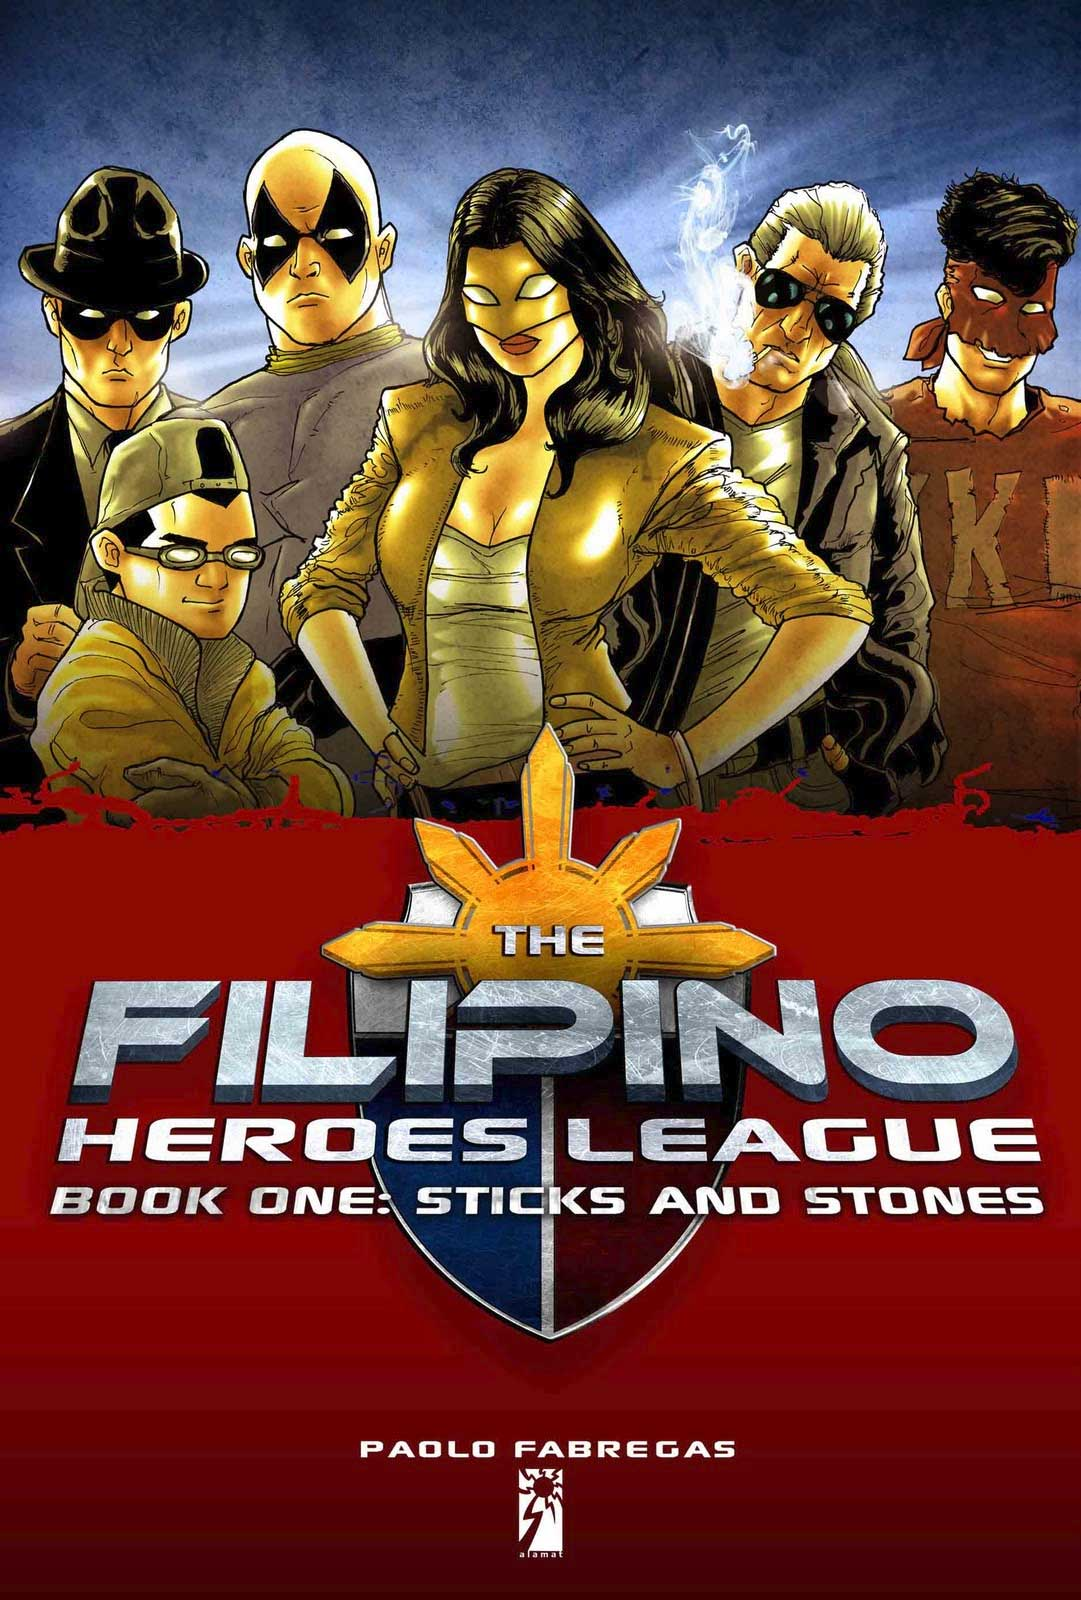 Filipino Heroes League An Interview With Paolo Fabregas